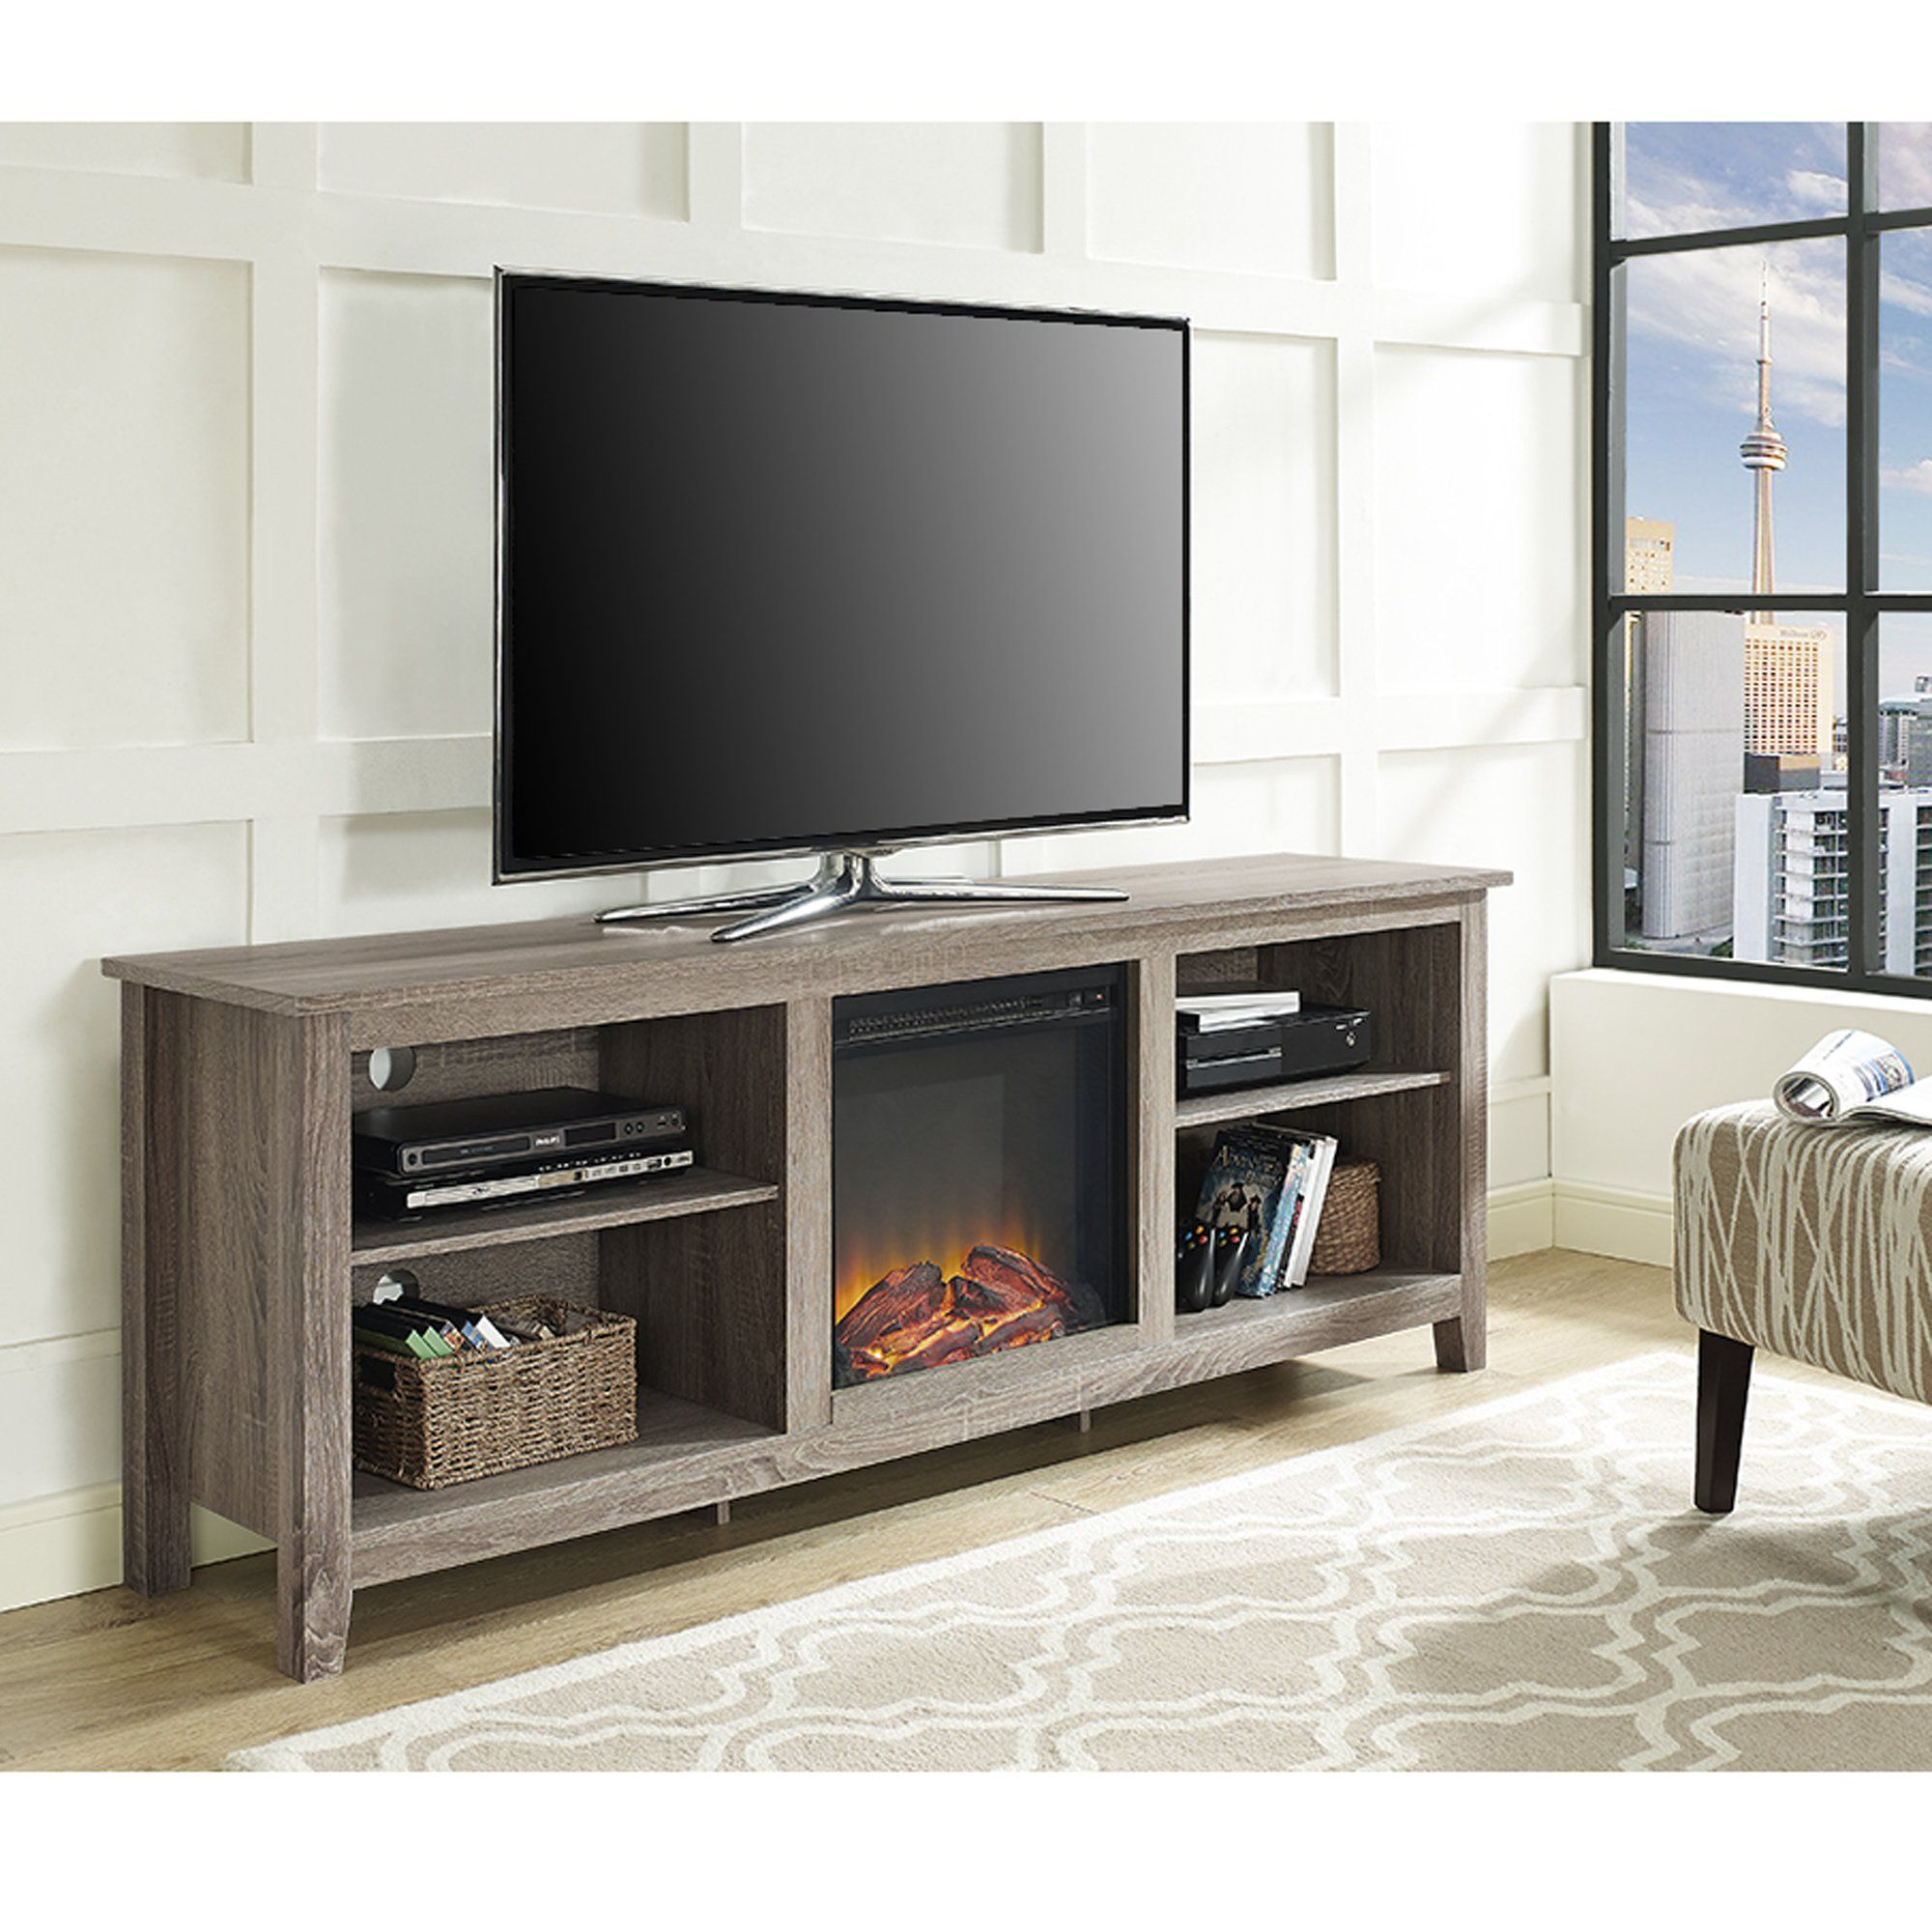 We Furniture Wood Tv Stand With Fireplace 70 Grey Acheter  # Cheminee Electrique Meuble Tele